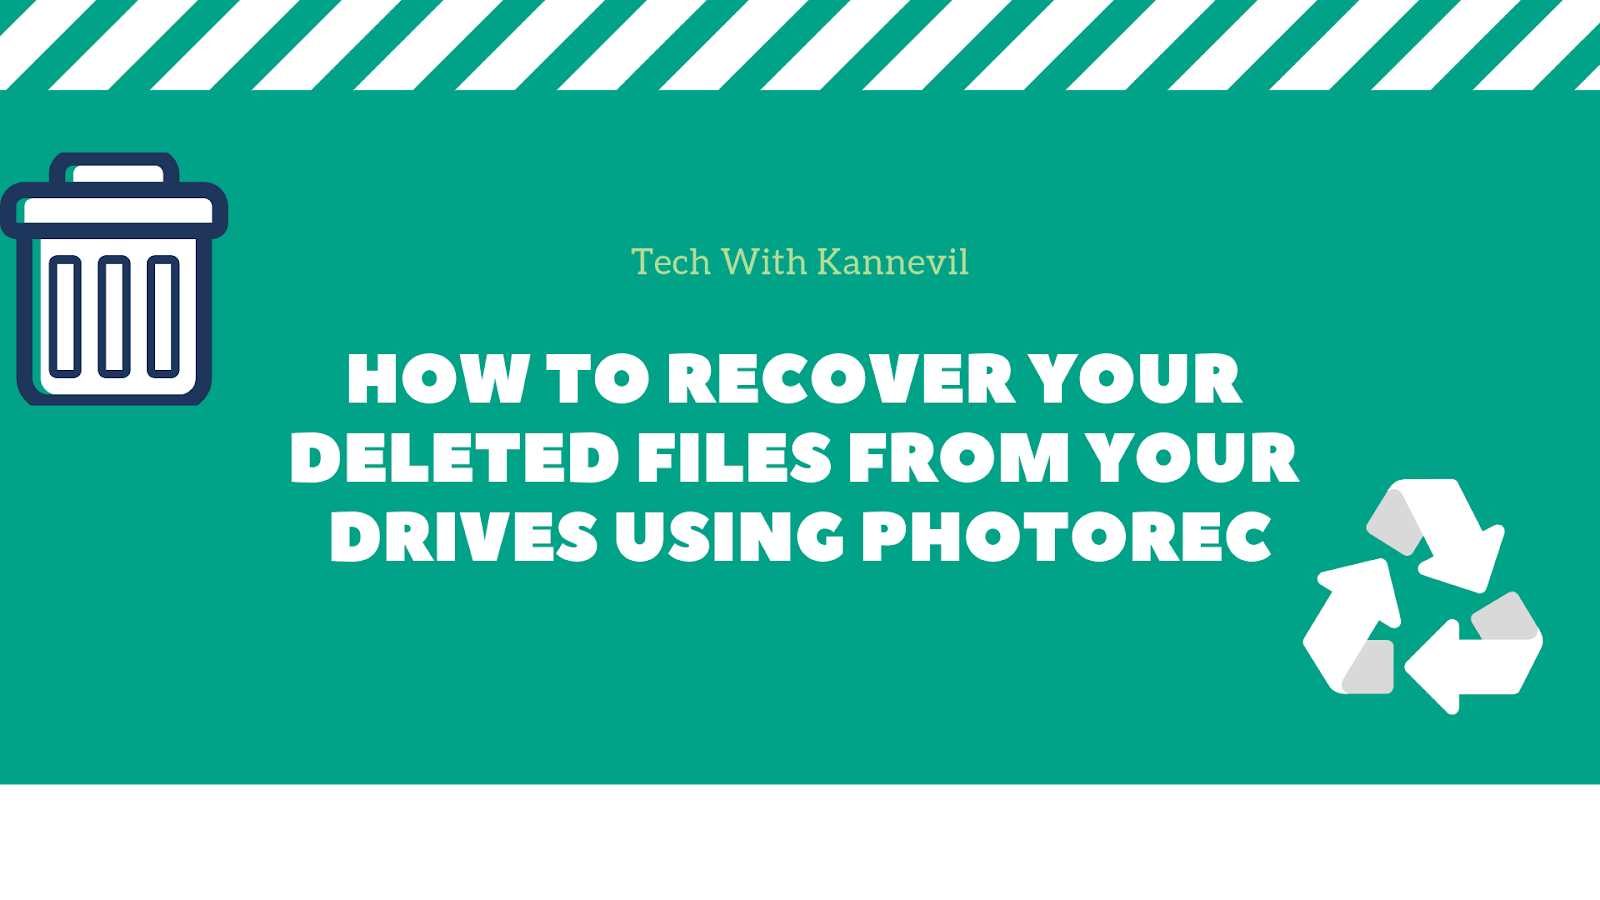 How to recover your deleted files using Photorec even after